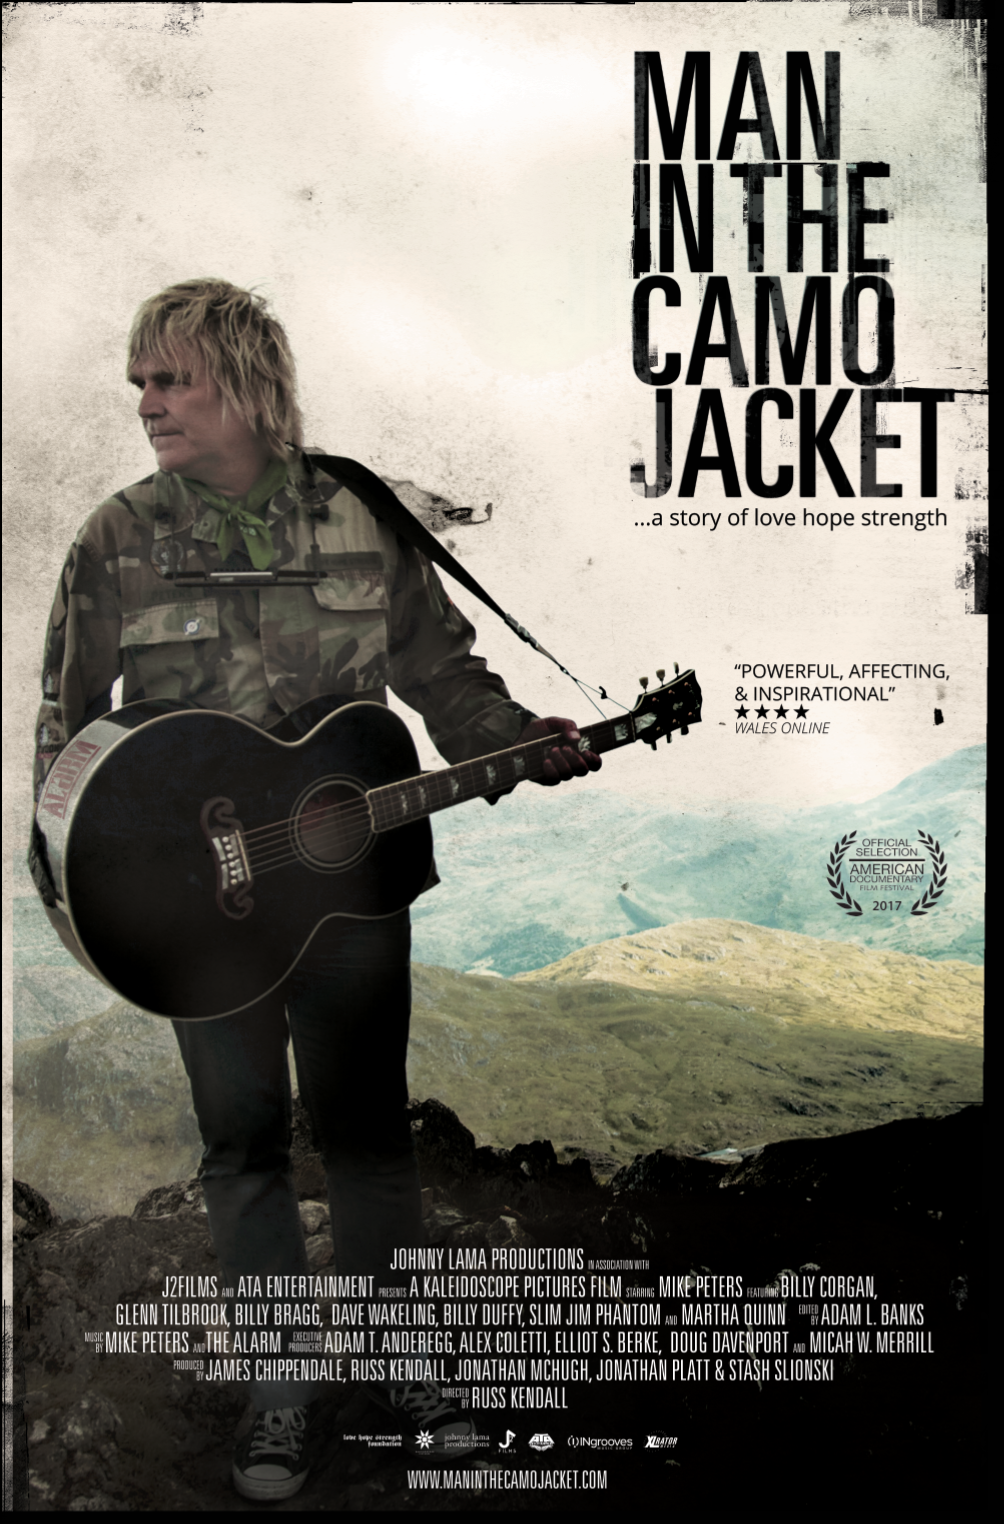 Man in the Camo Jacket - Film Poster